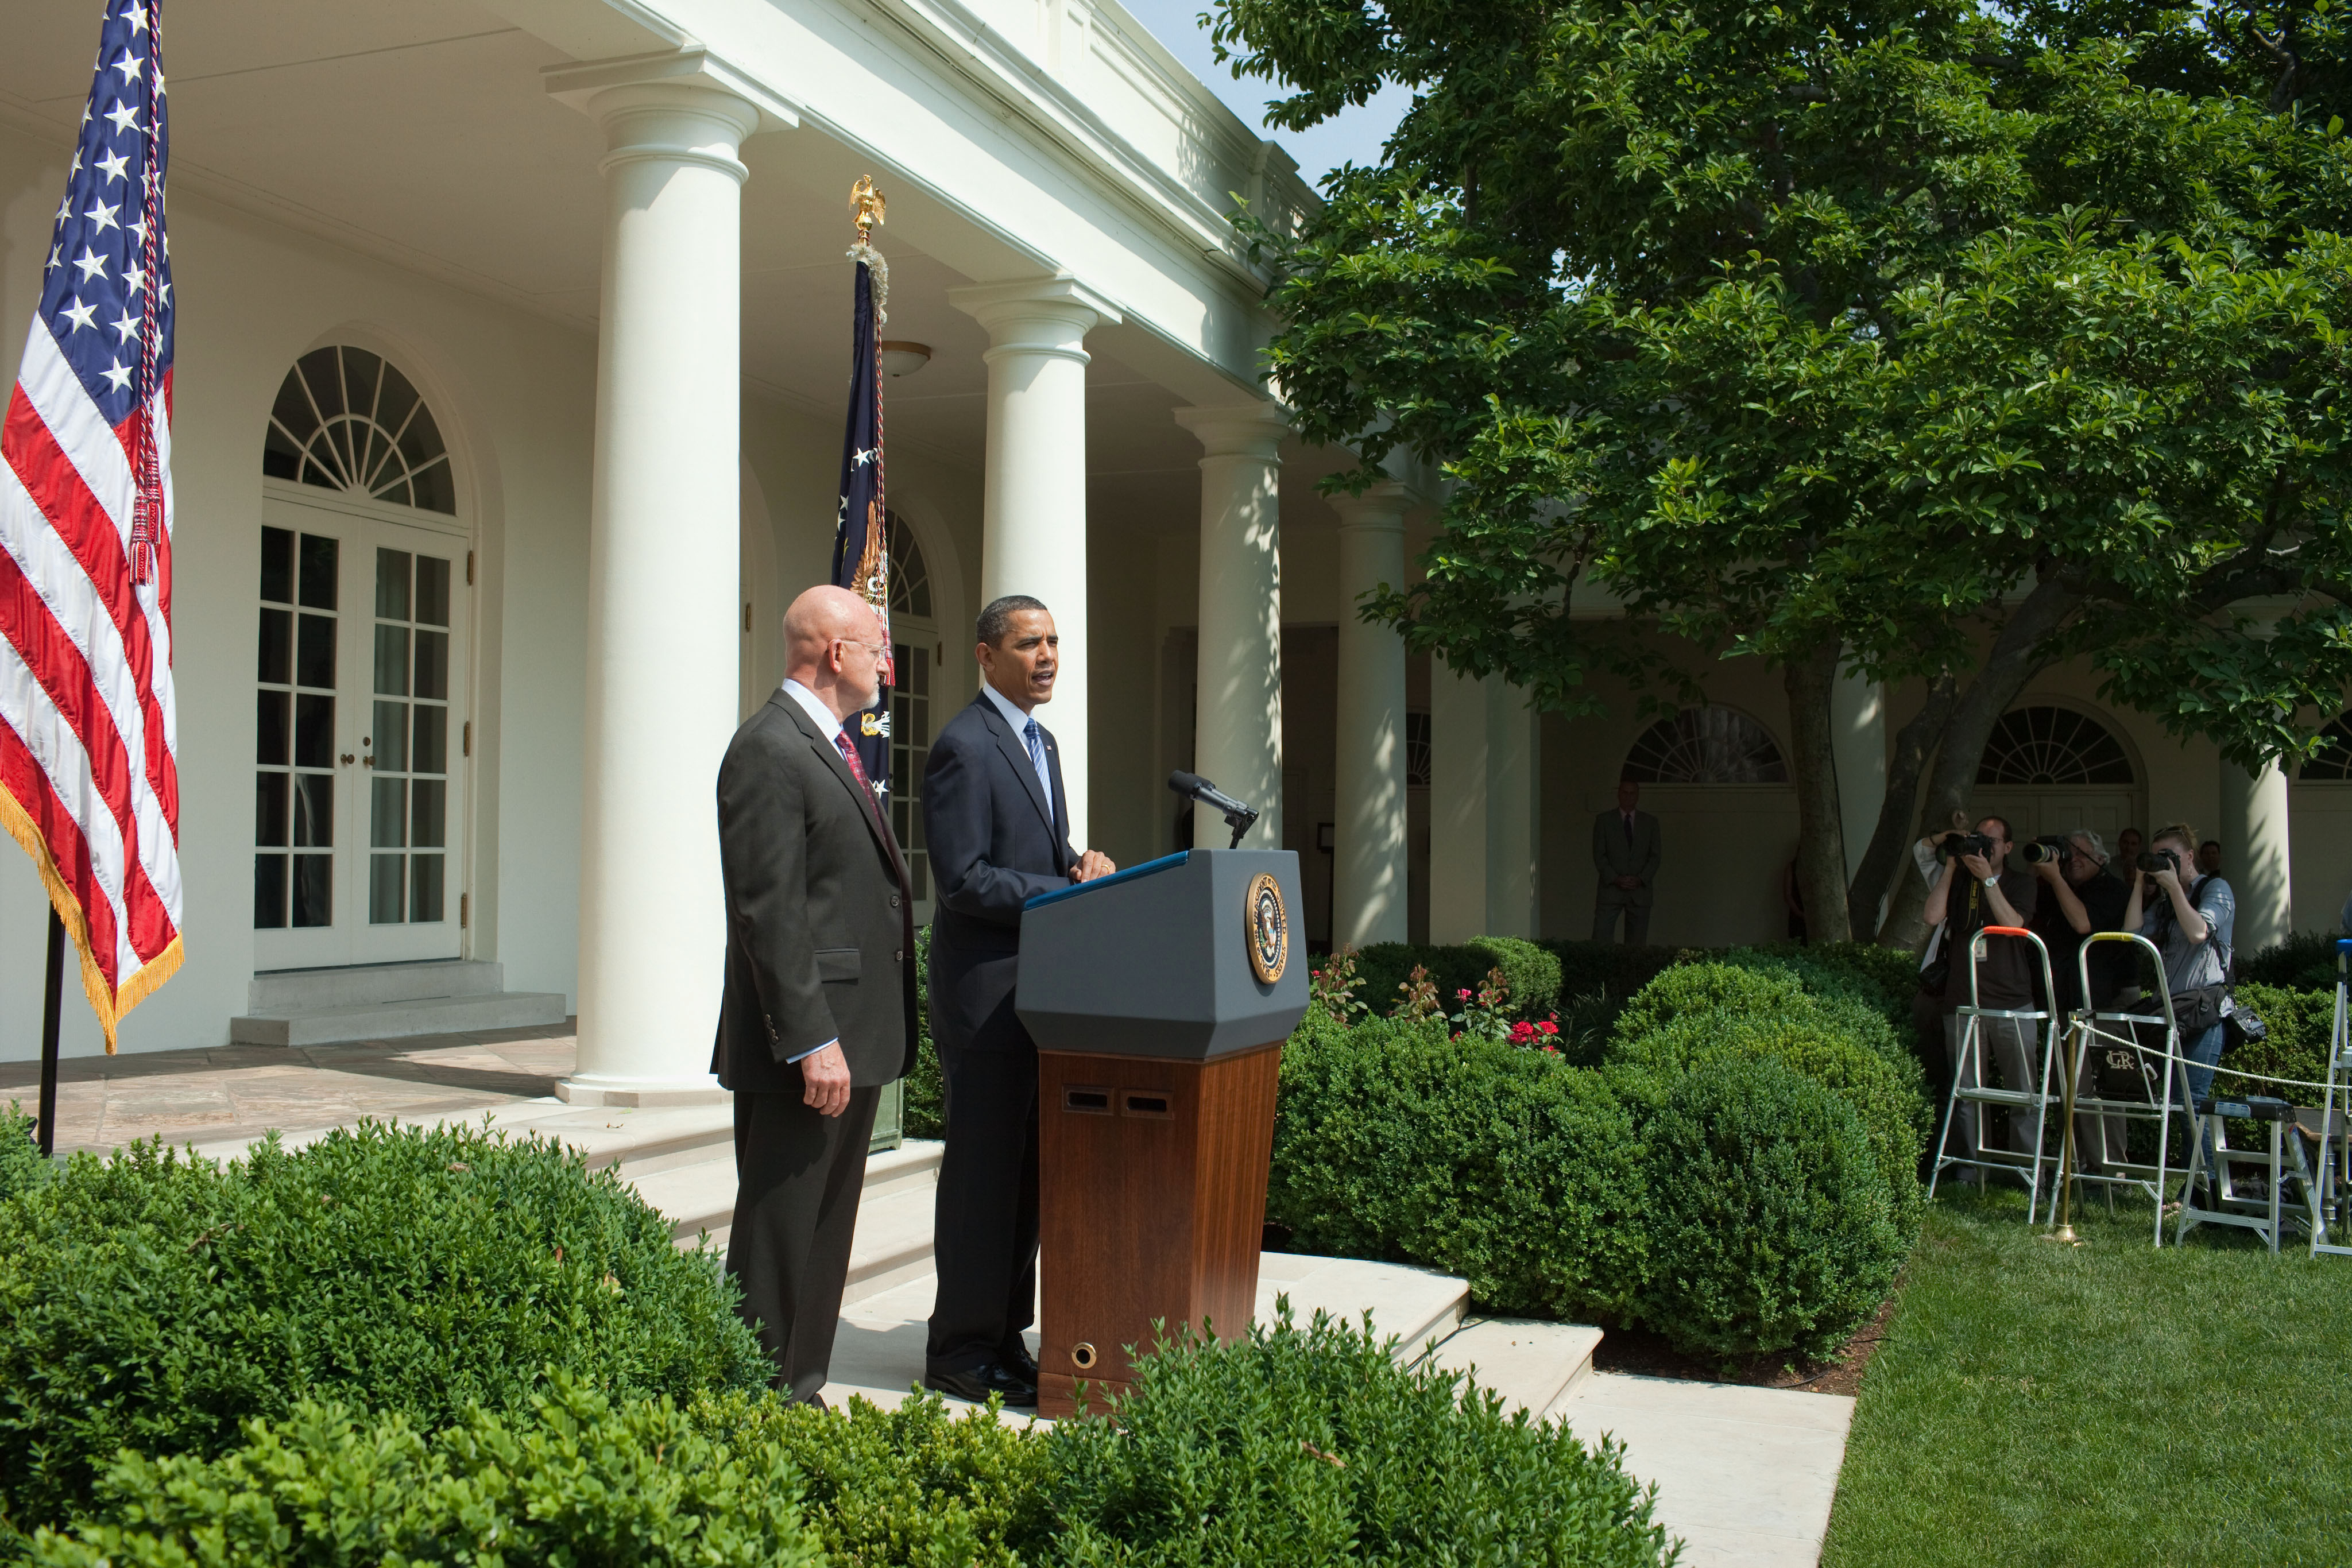 President Obama Announces James R. Clapper Jr. as Director of National Intelligence